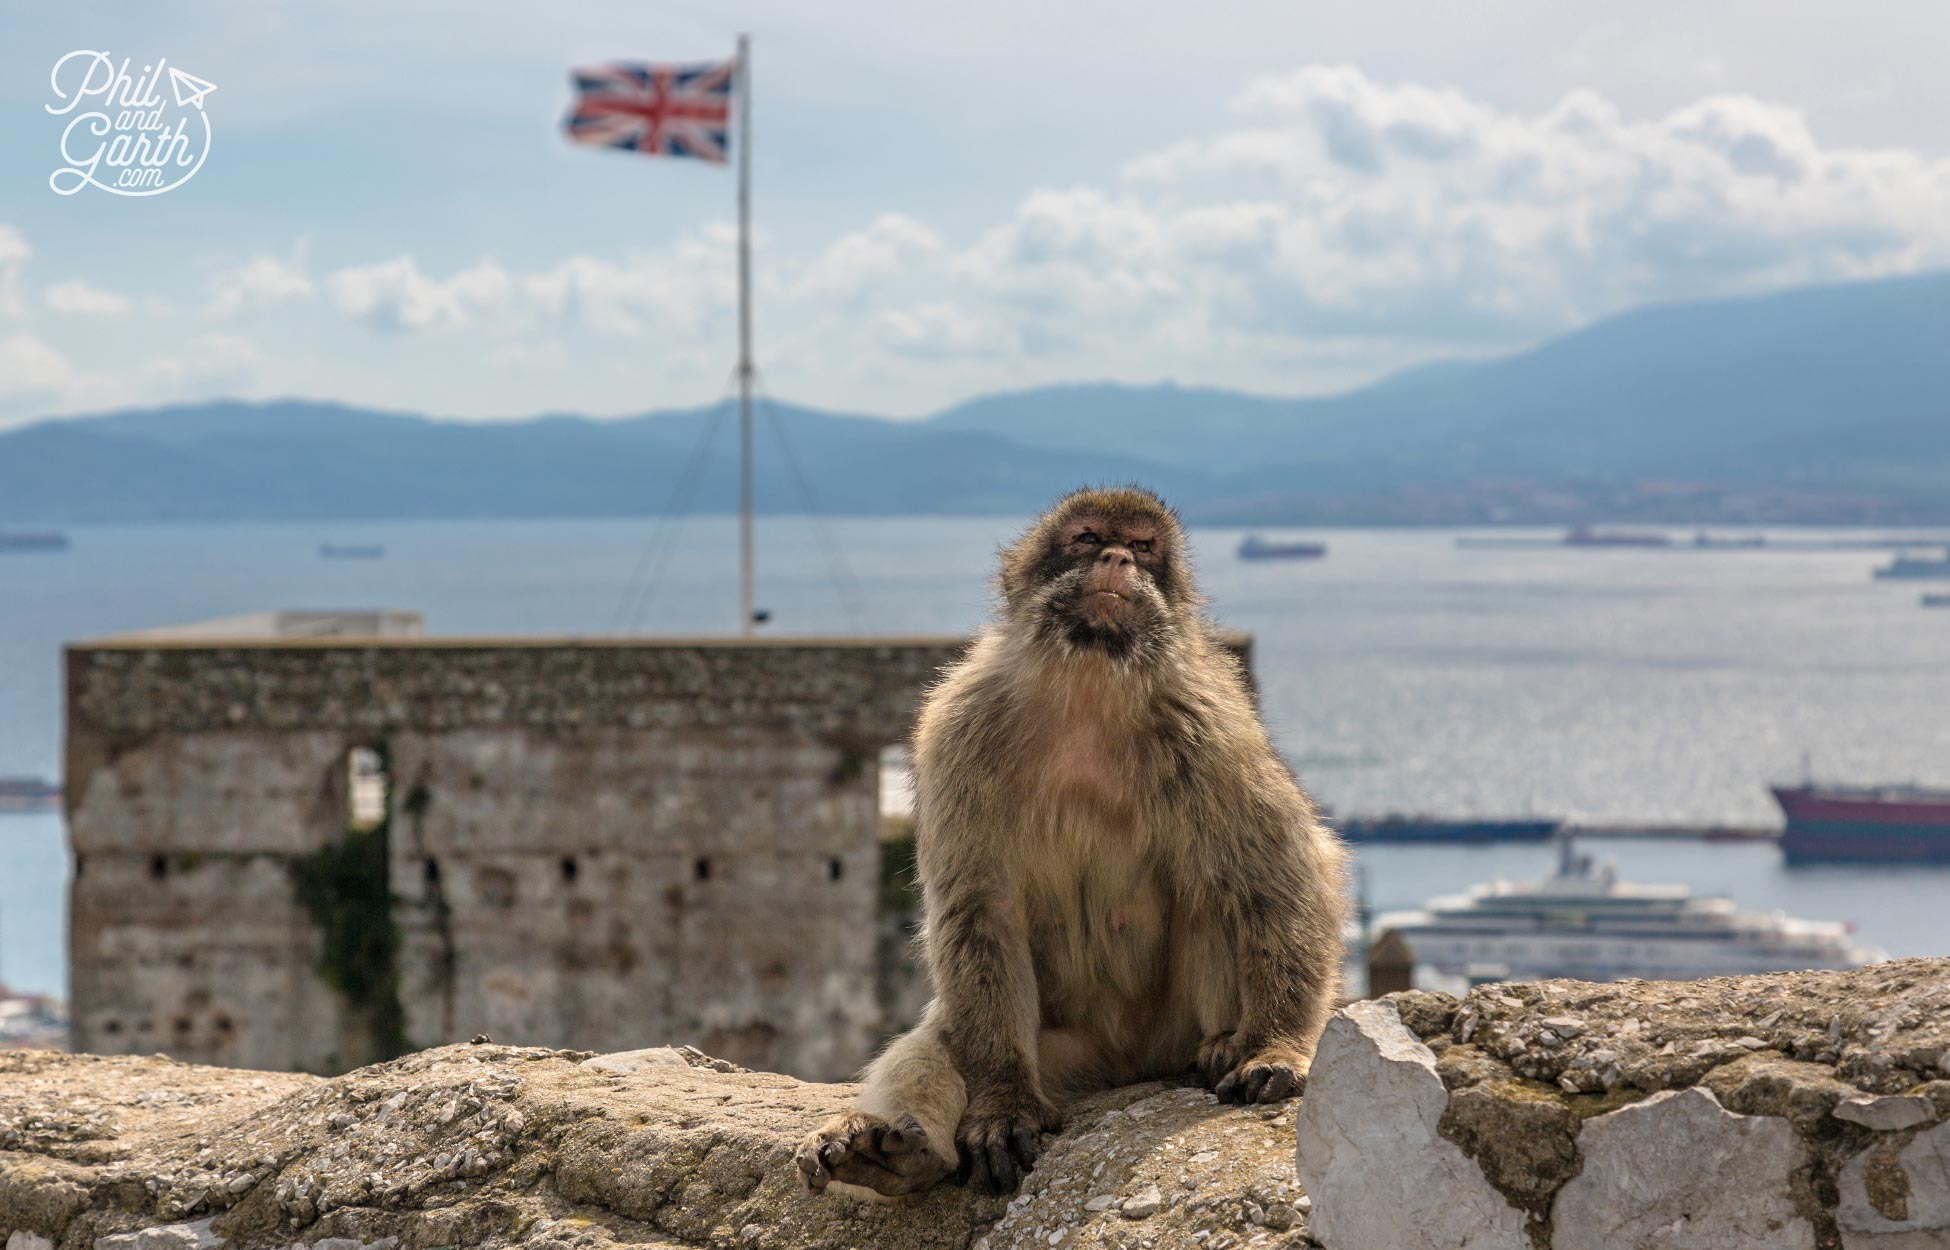 A barbary macaque sunning himself next to the castle